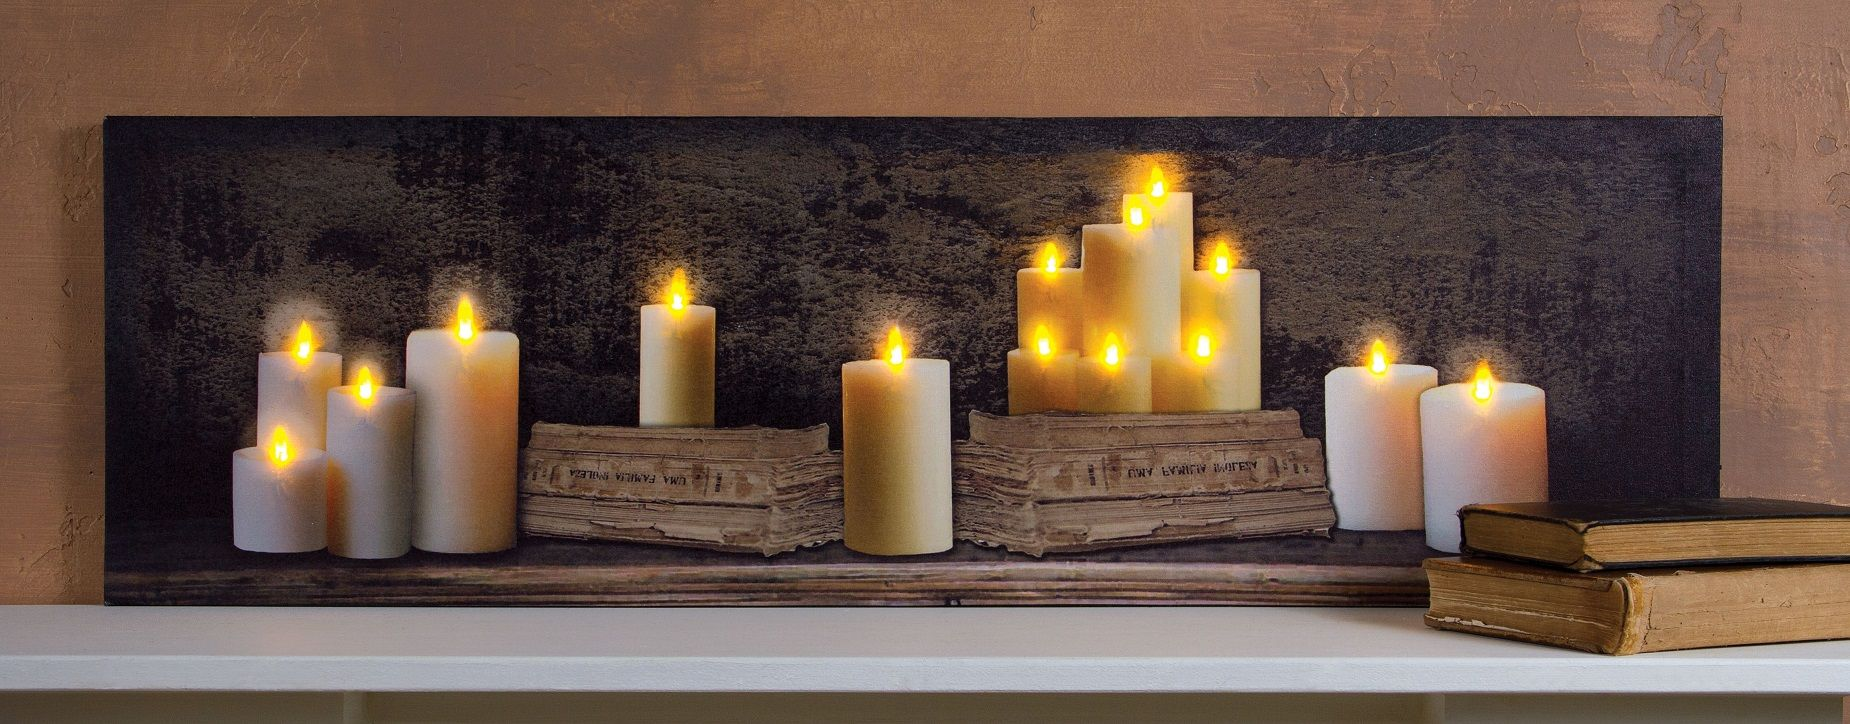 Radiance Lighted Small Canvas Mantle of Candles and Old Books with Timer